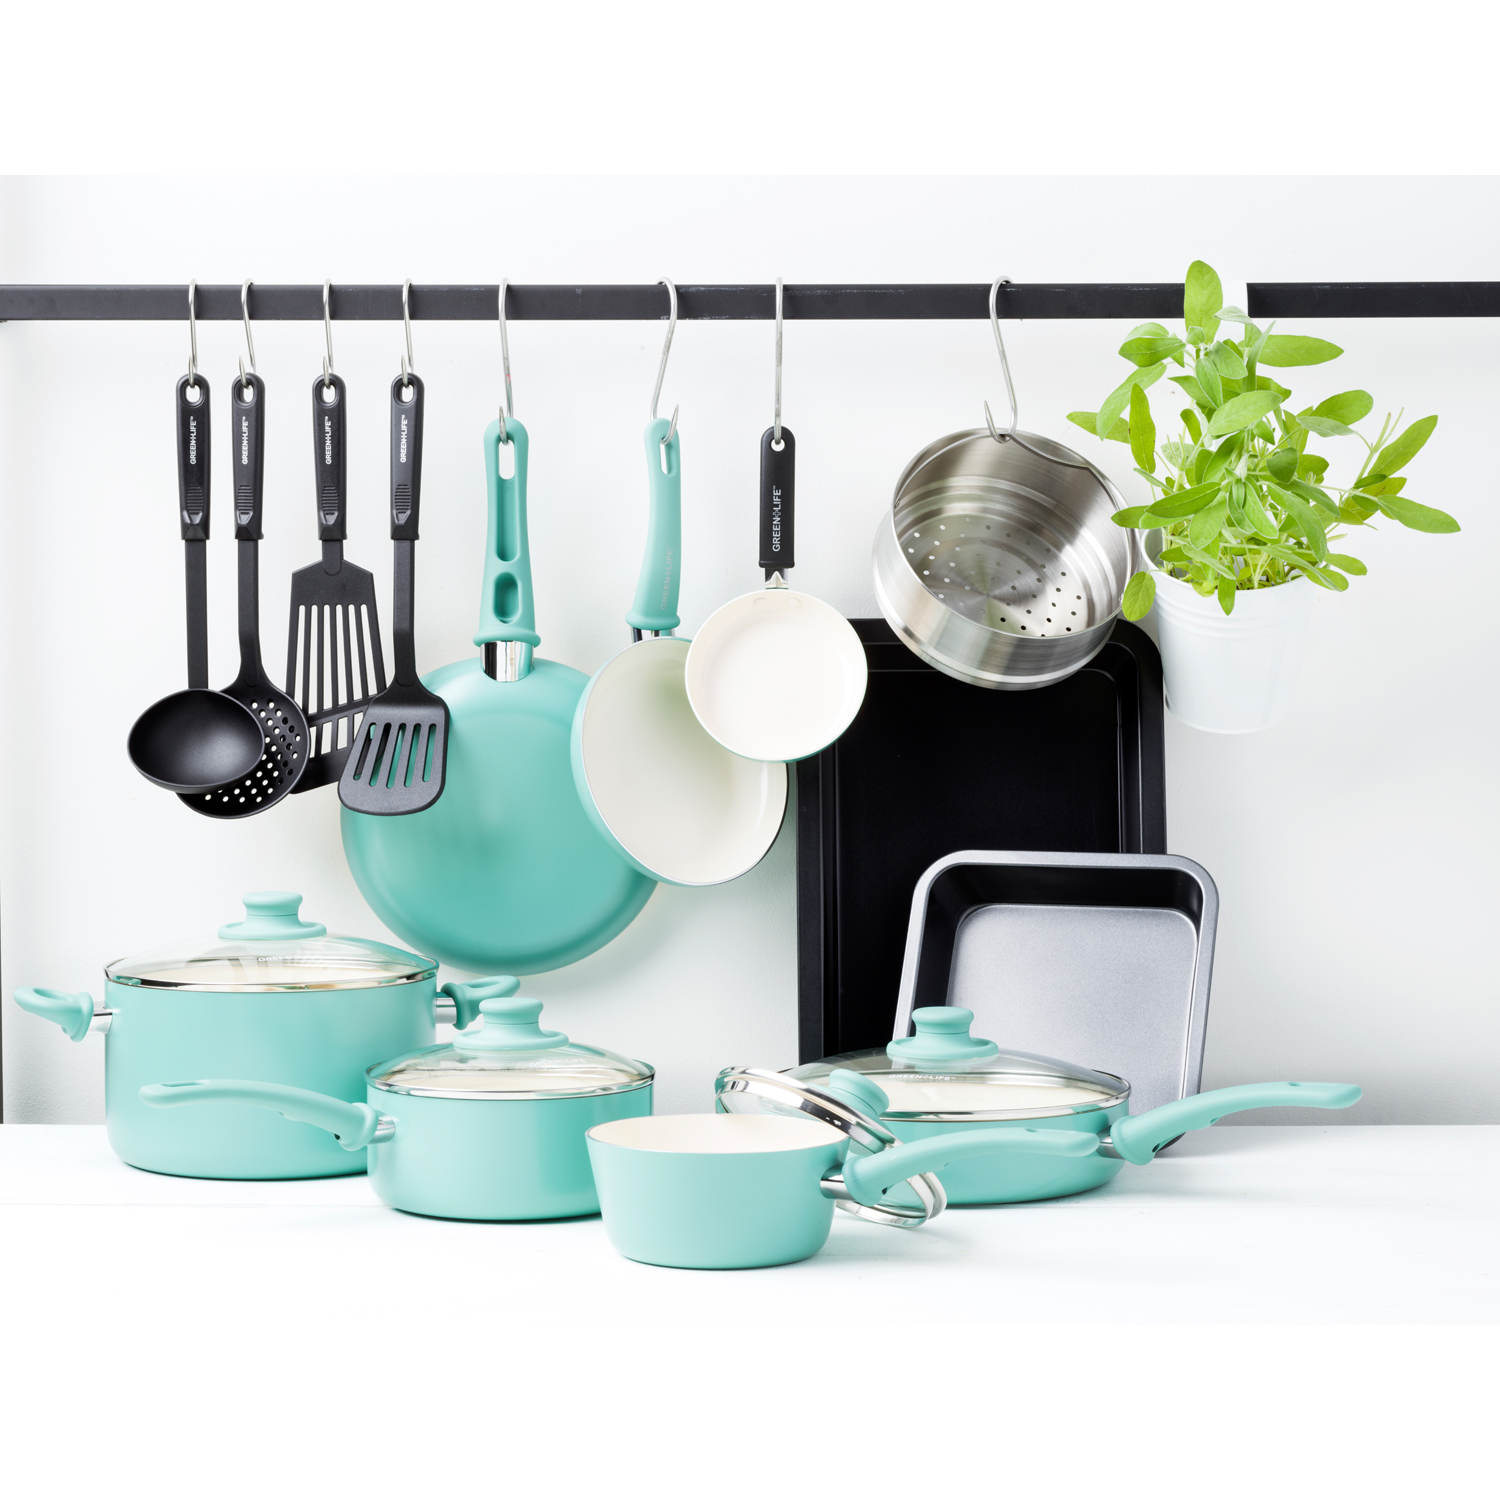 GreenLife Chef's Essentials Ceramic Non-Stick 18pc Cookware Set, Turquoise